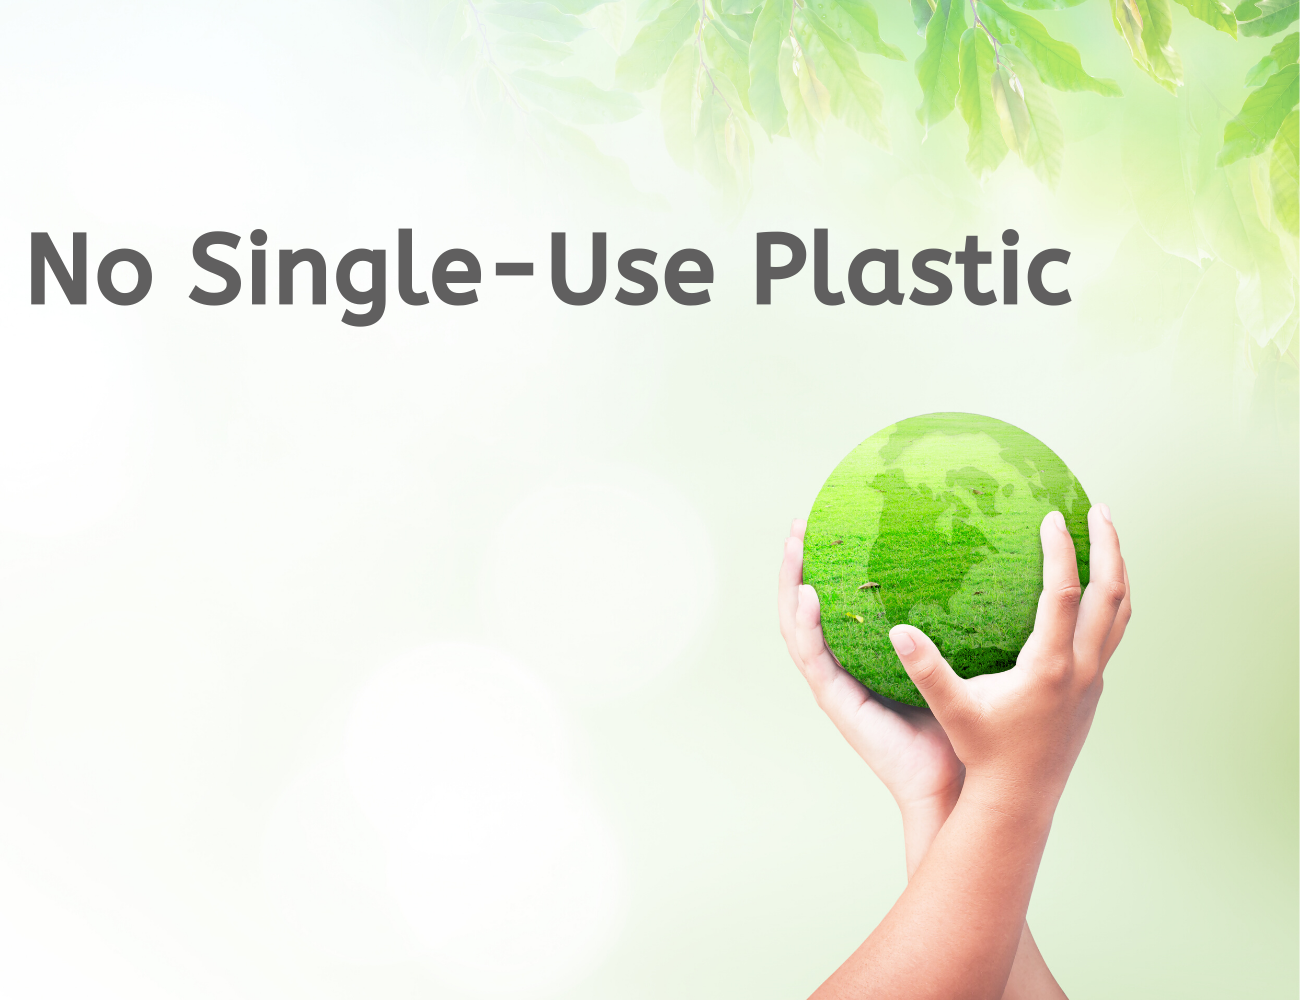 """Two hands holding a green globe next to the words """"No single-use plastic""""."""